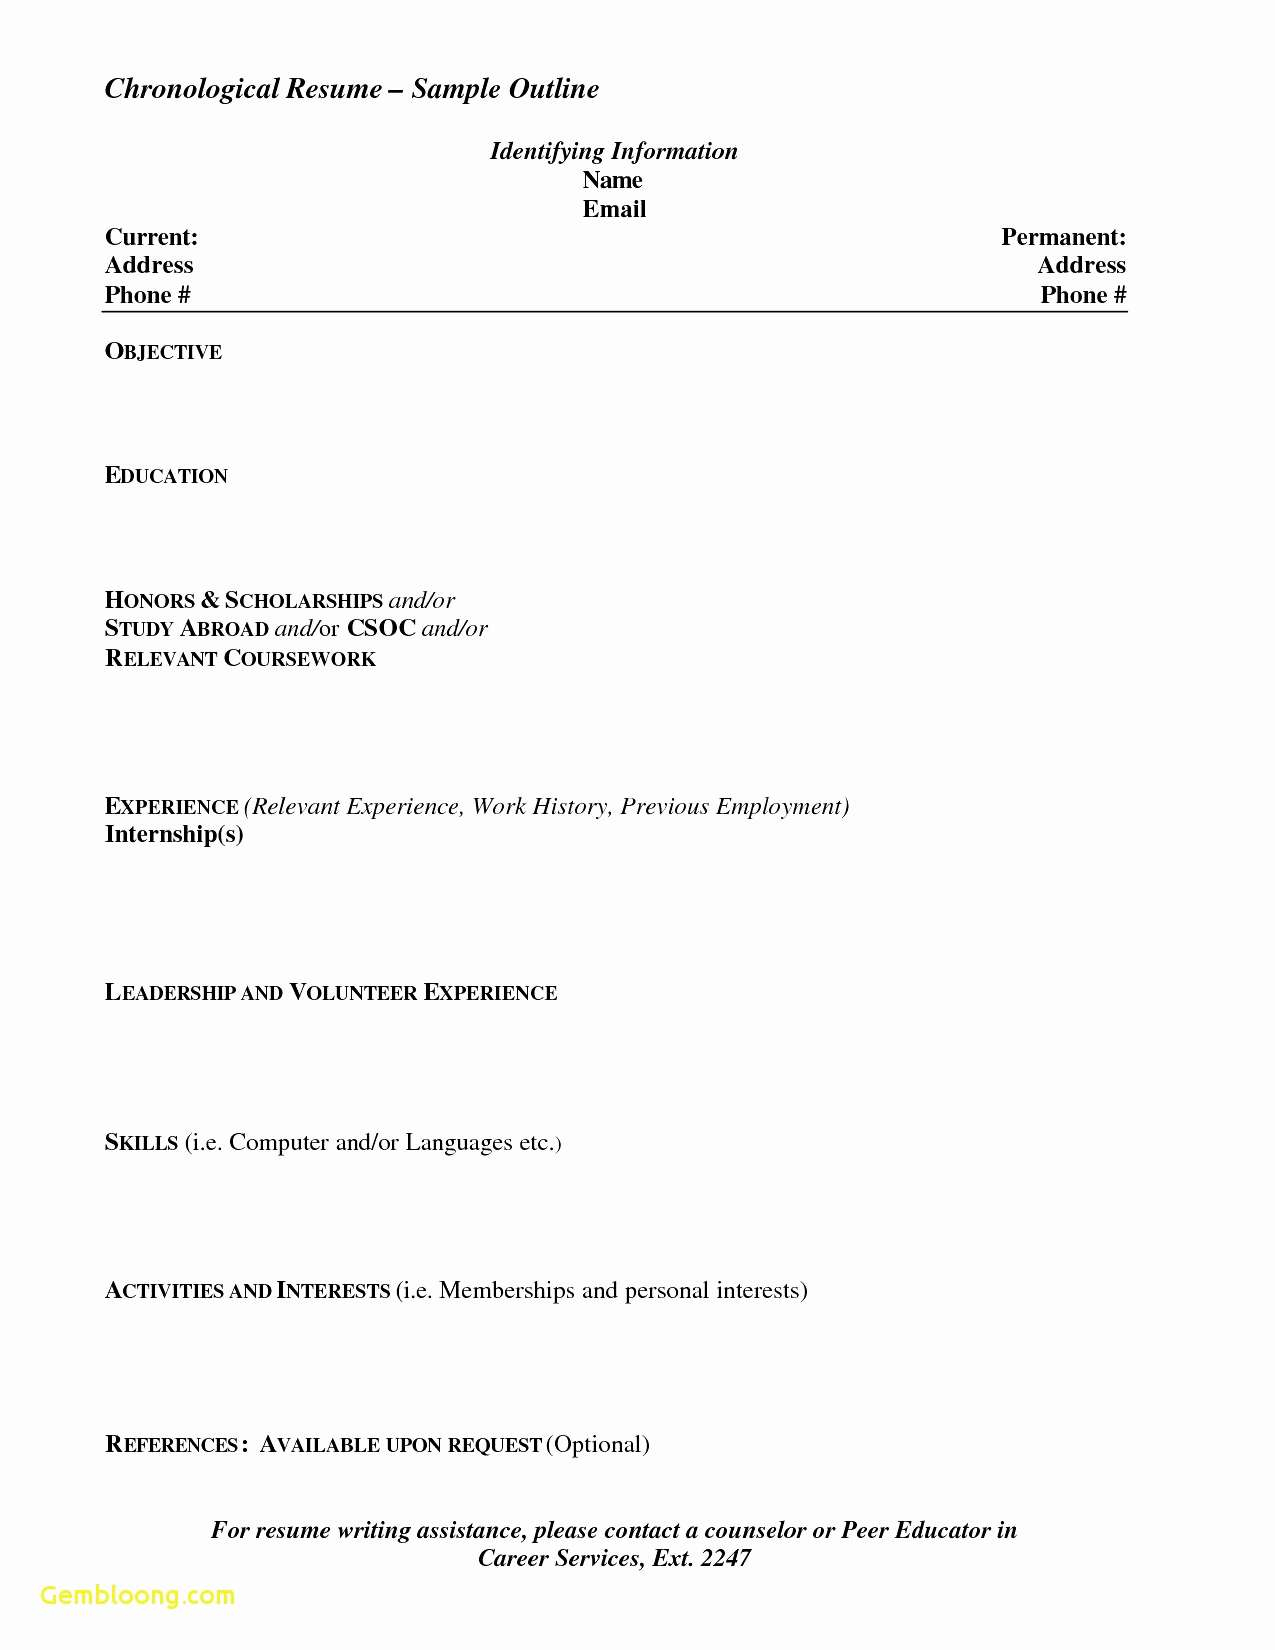 Internal Cover Letter Template - Internal Job Resume Unique Resume for Apply How to format A Cover